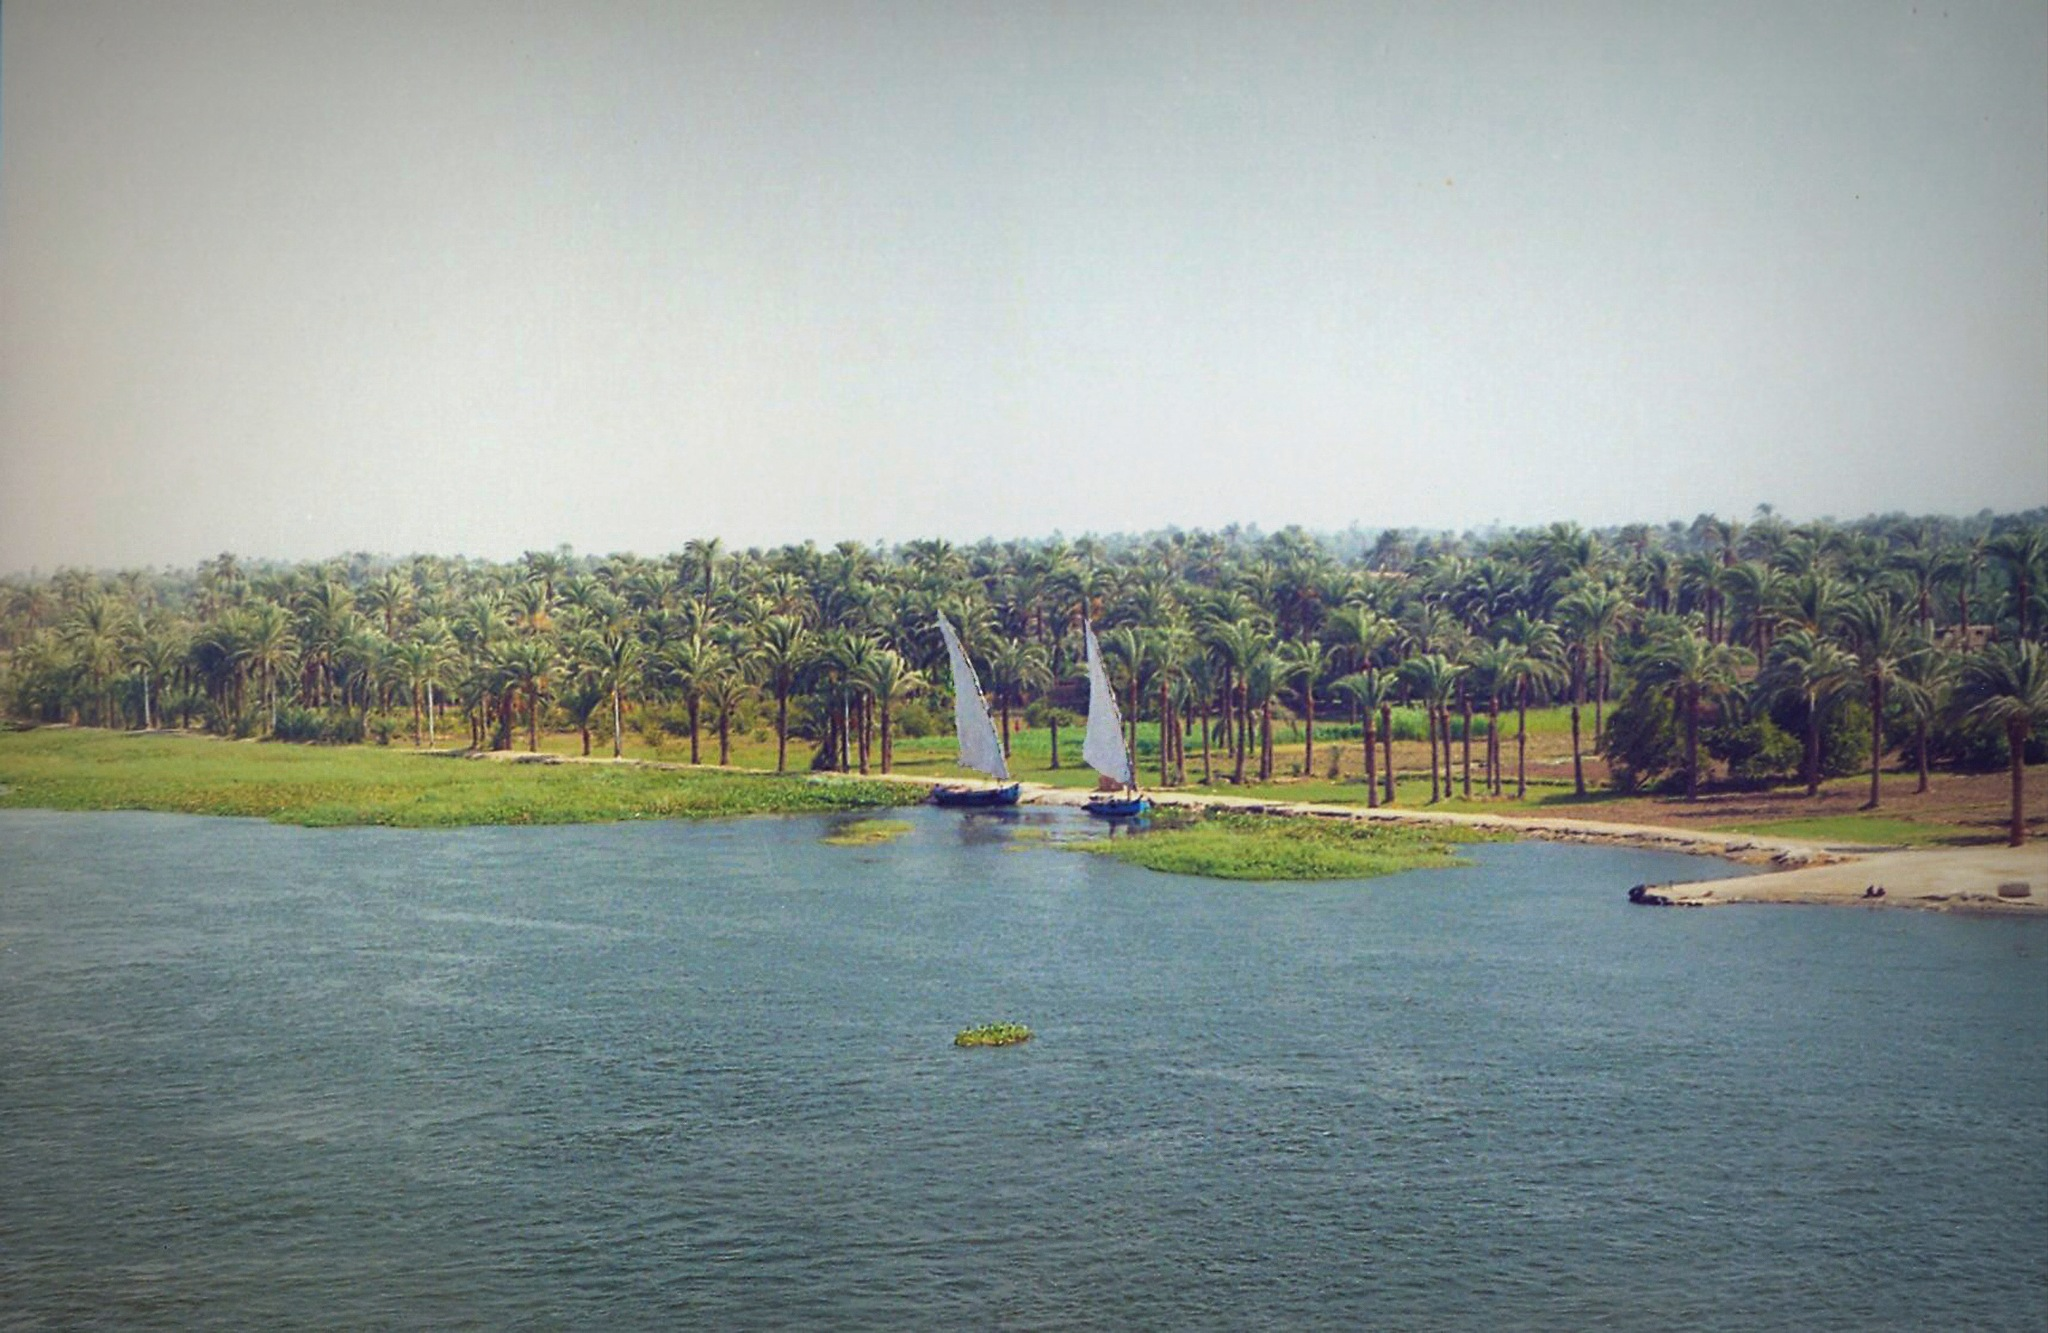 Over the Nile 025 by mo'ness youness